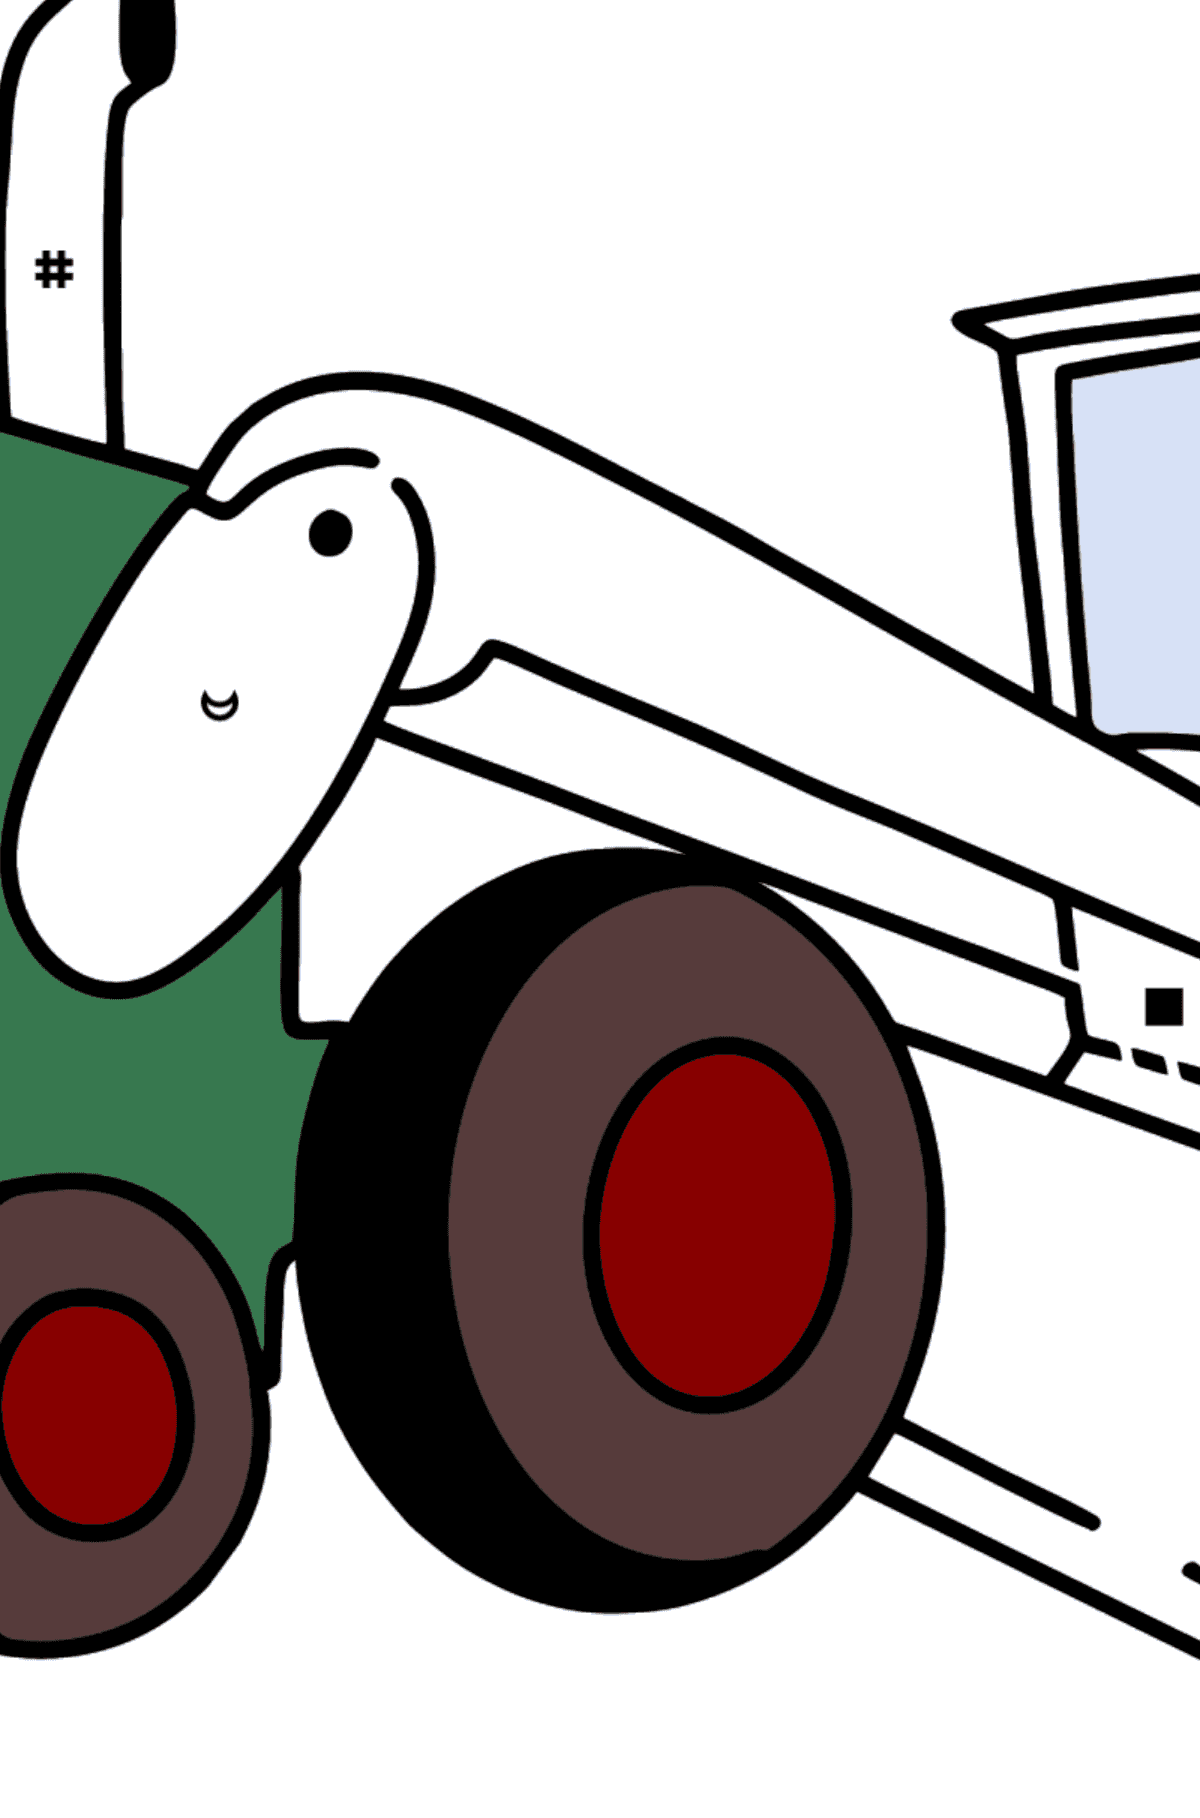 Tractor Grader coloring page - Coloring by Symbols for Kids